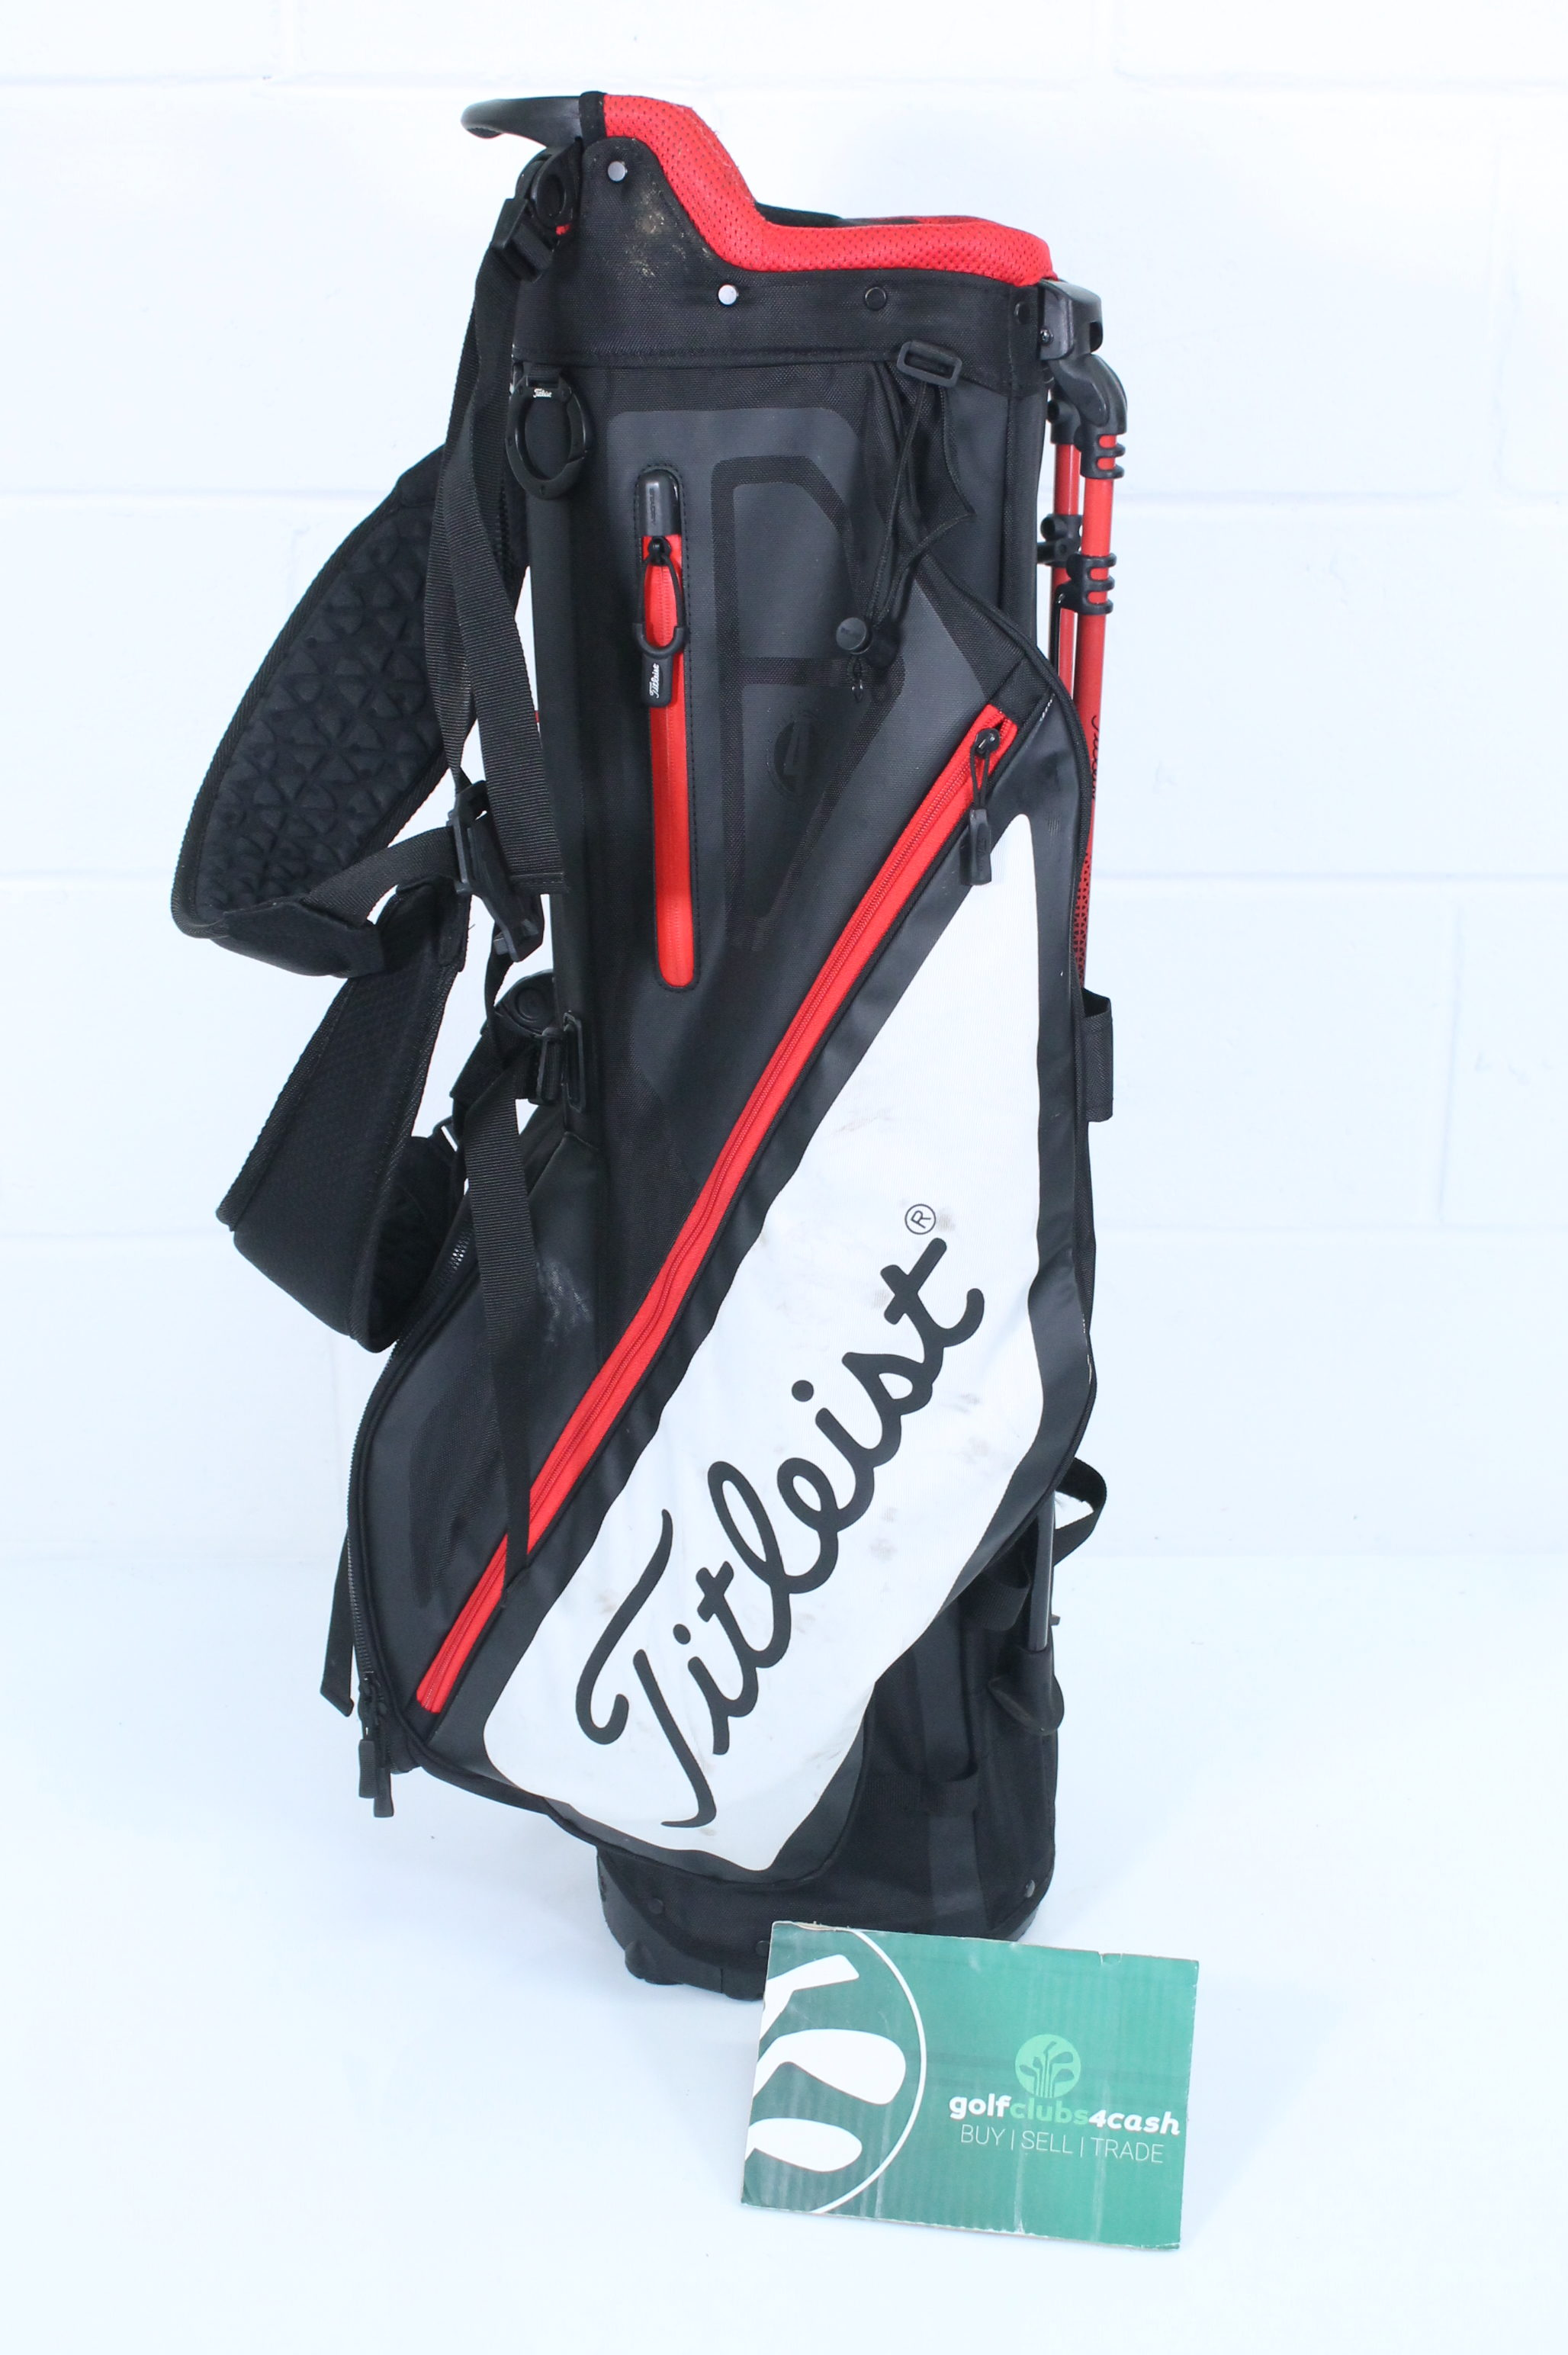 cc6d62853e TITLEIST PLAYERS 4 STAND BAG / BLACK RED WHITE / 4-WAY DIVIDER ...